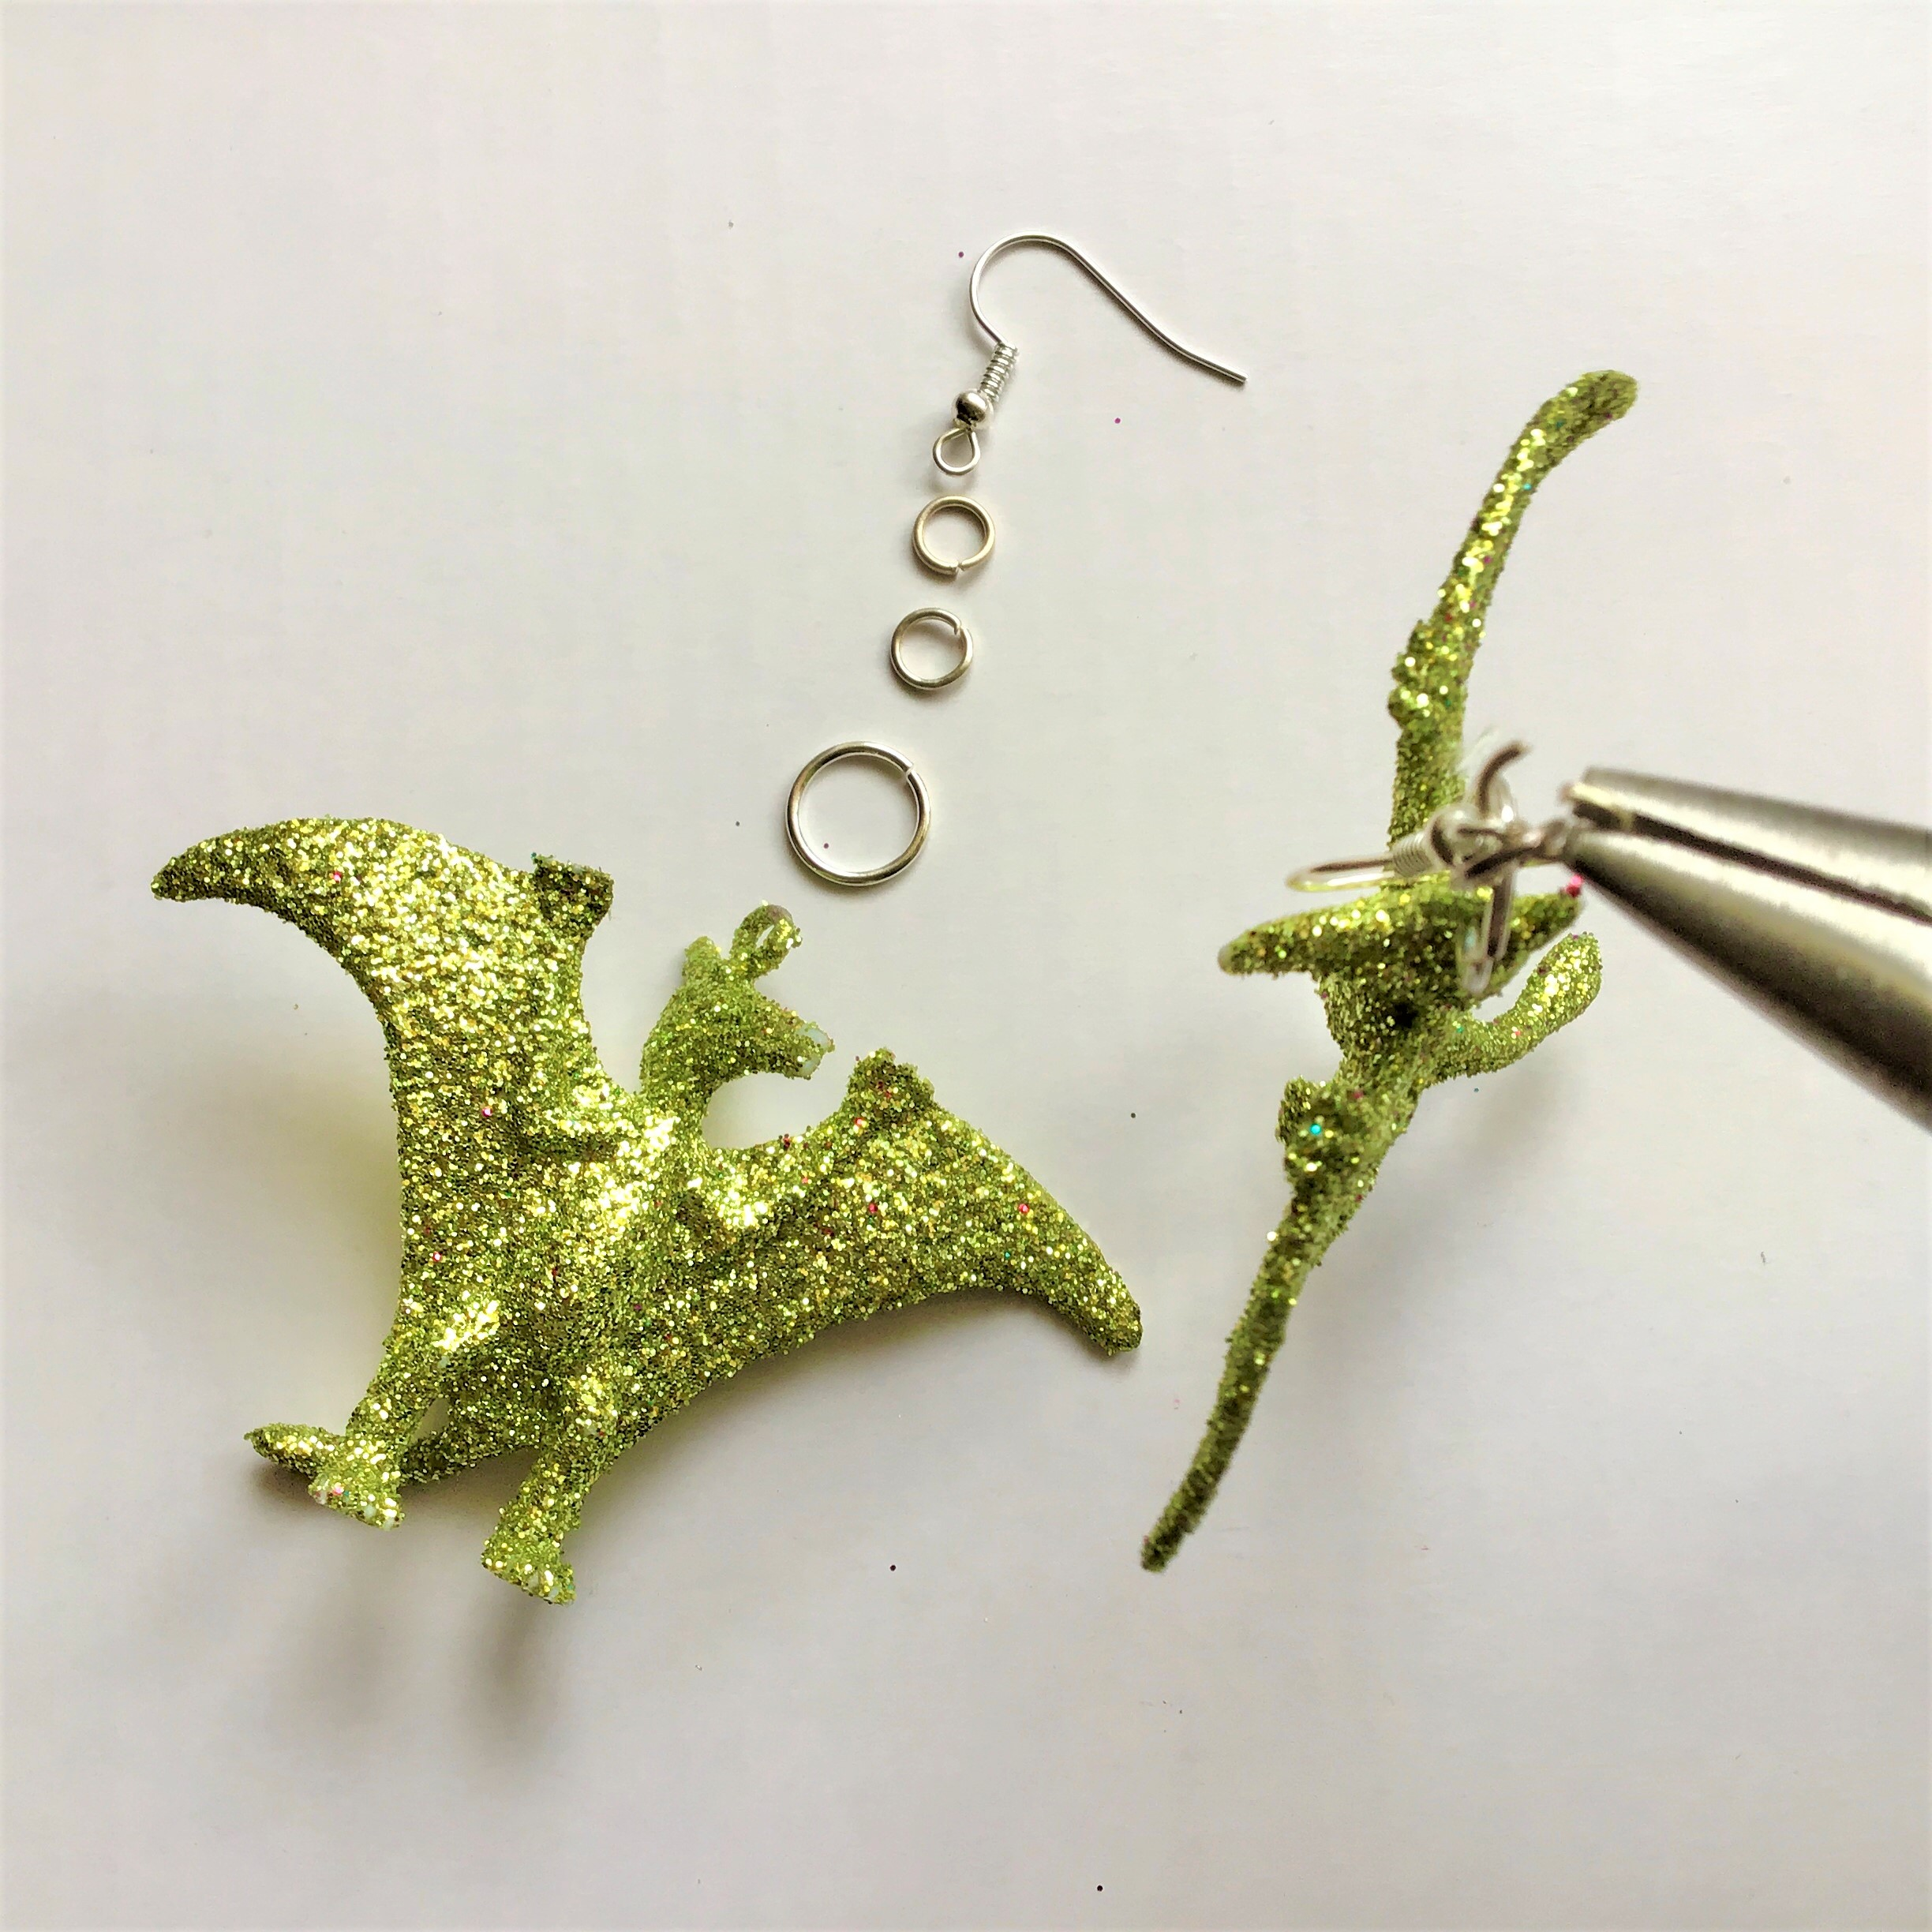 Glitter Dinosaur Earrings DIY - Chandelier Pterodactyl